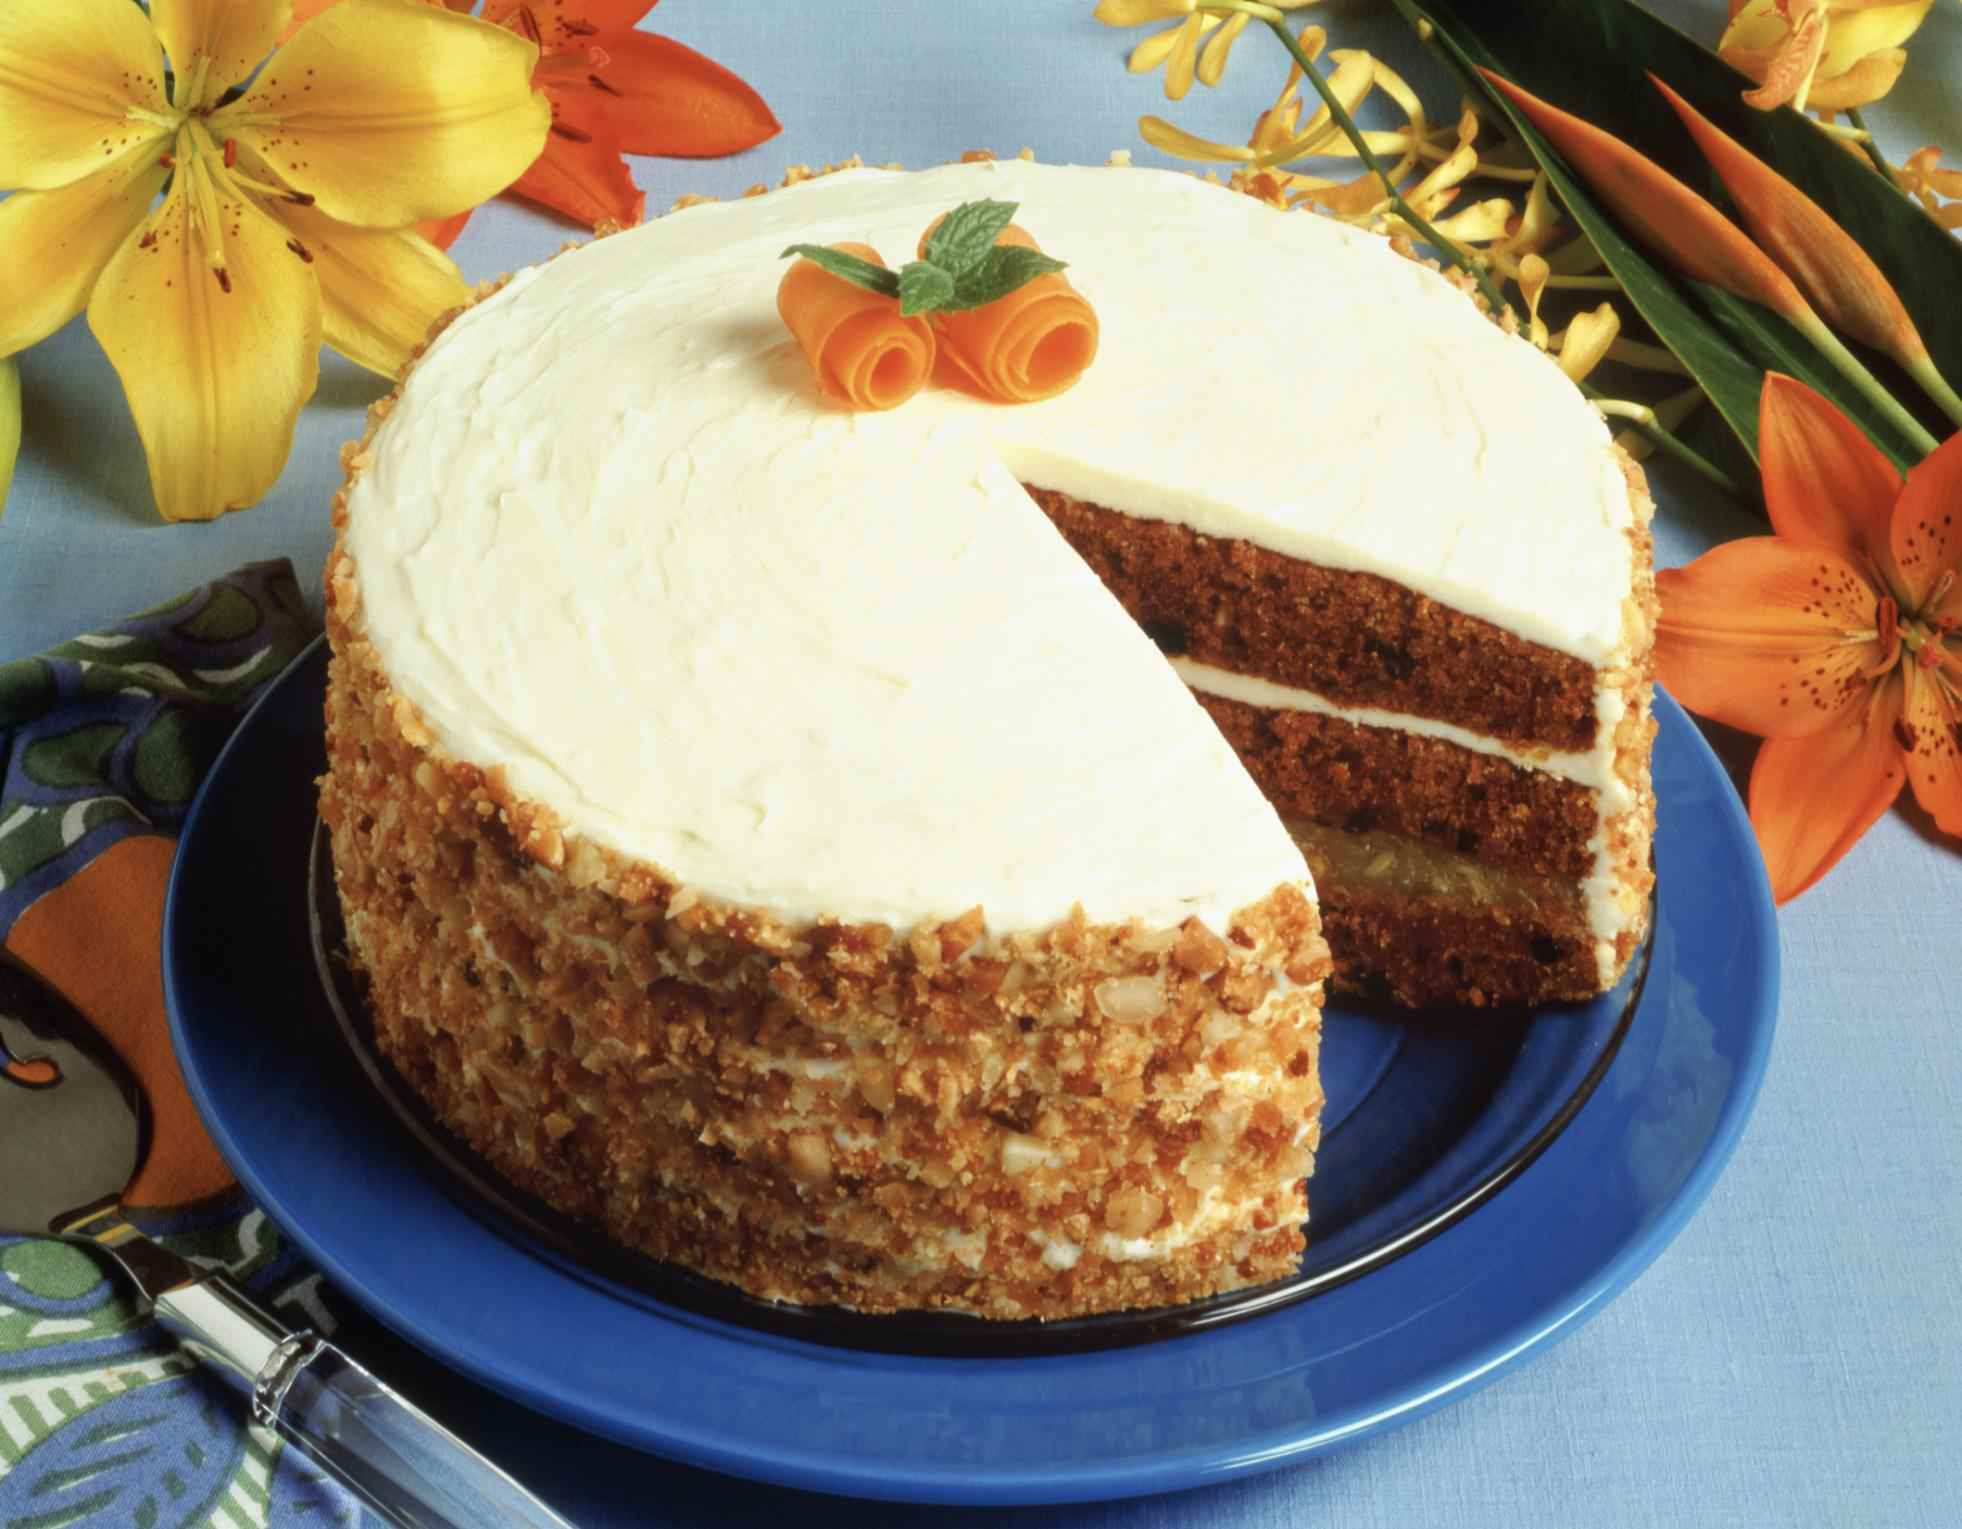 A Carrot Cake with Slice Removed